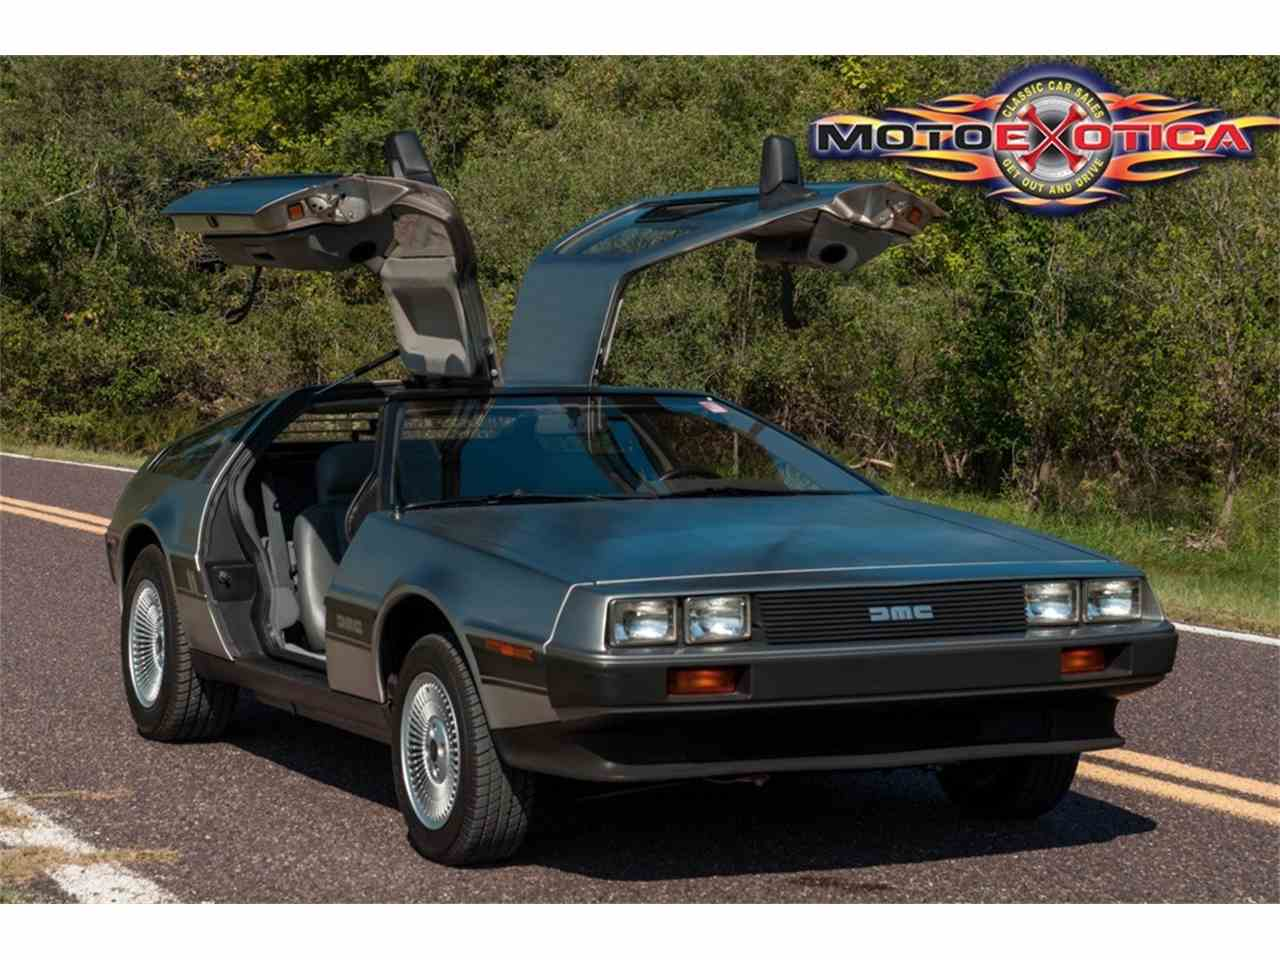 Large Picture of '81 DeLorean DMC-12 Offered by MotoeXotica Classic Cars - JPXR